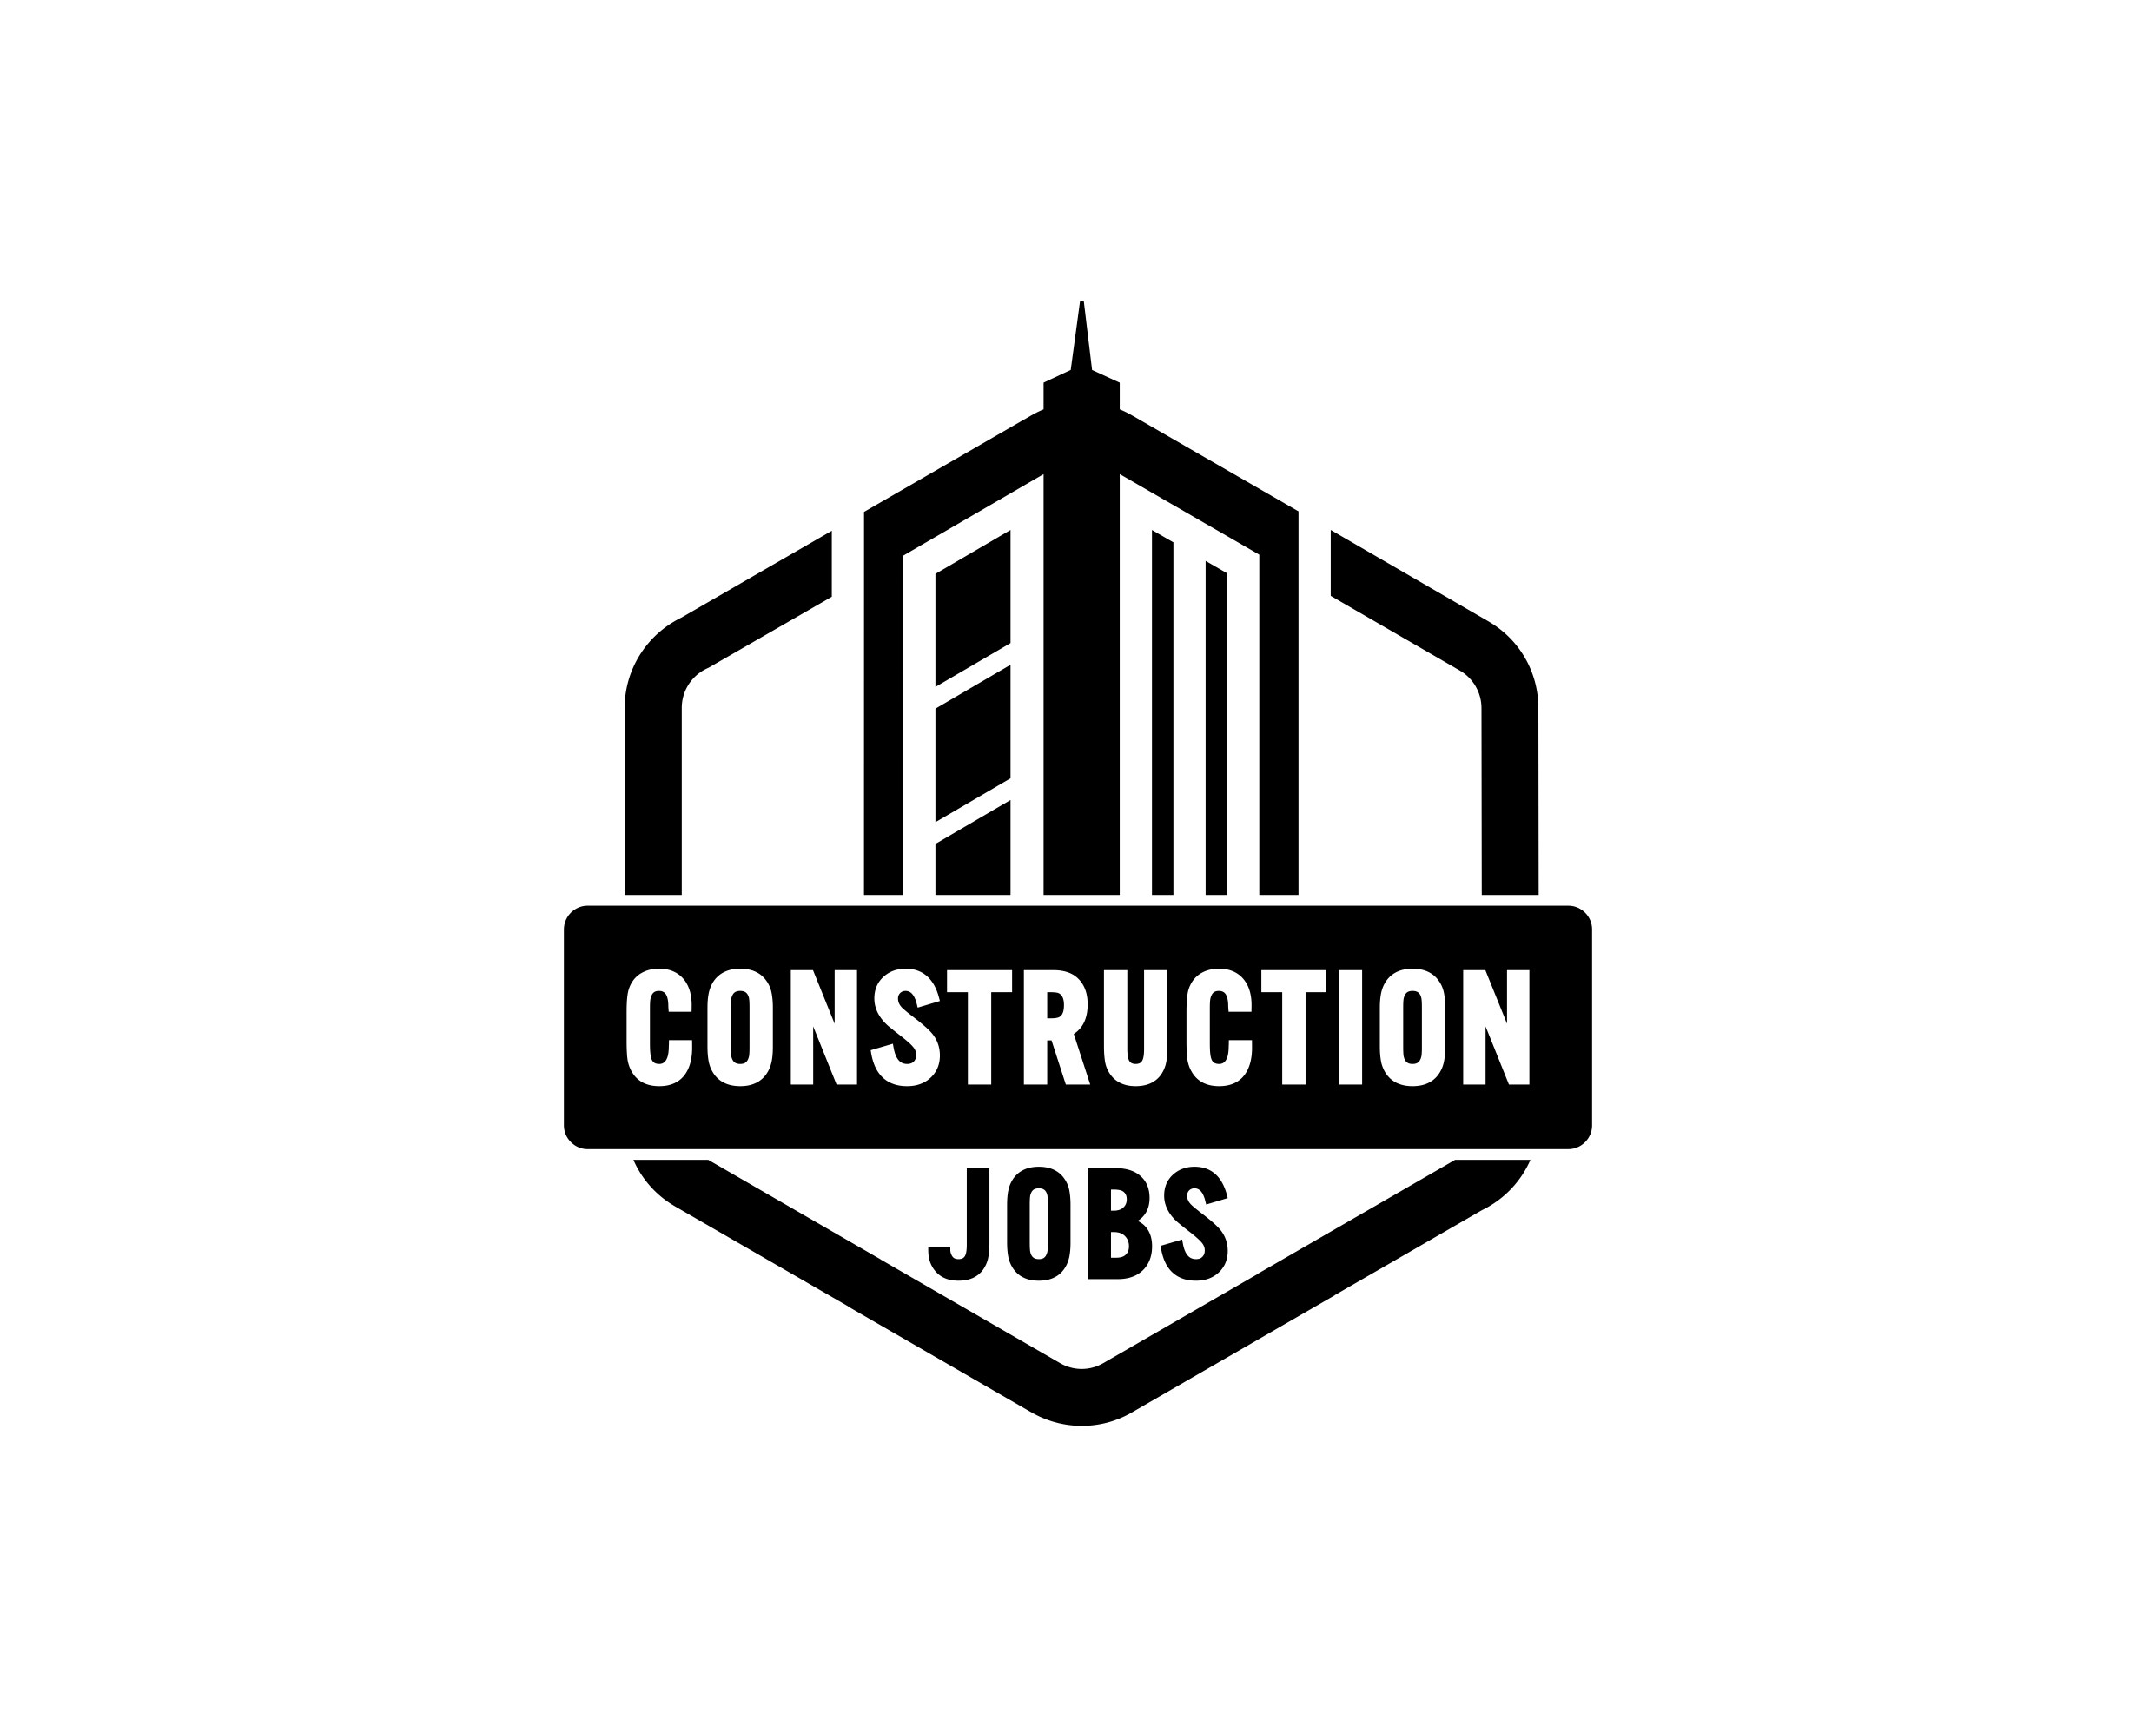 Design a logo for the largest construction job board (Construction Jobs)